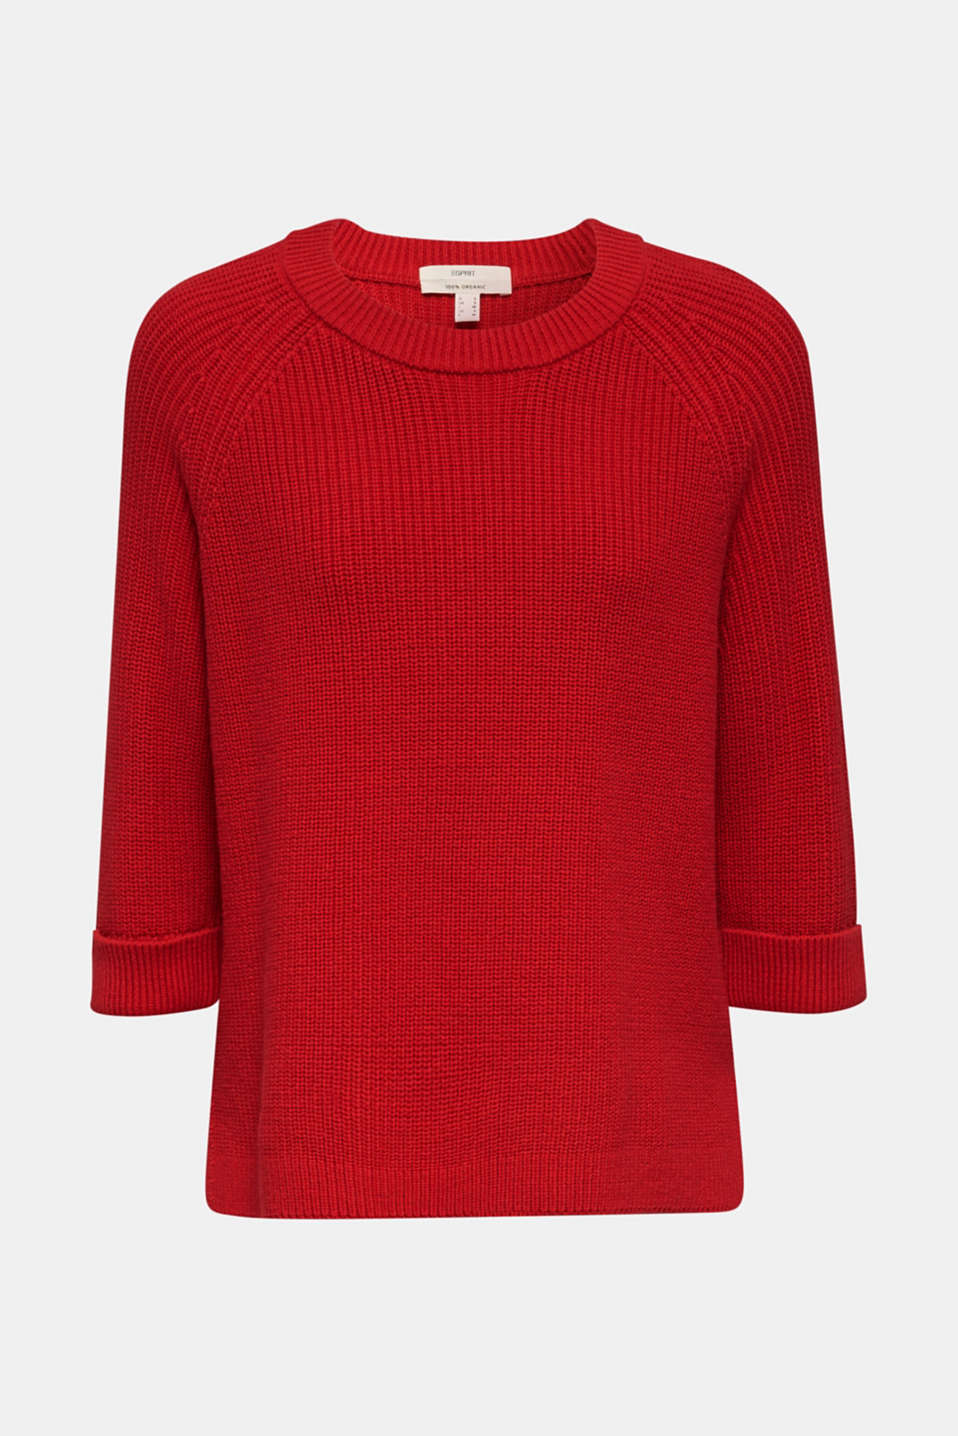 Jumper with a high-low hem, 100% cotton, DARK RED, detail image number 6